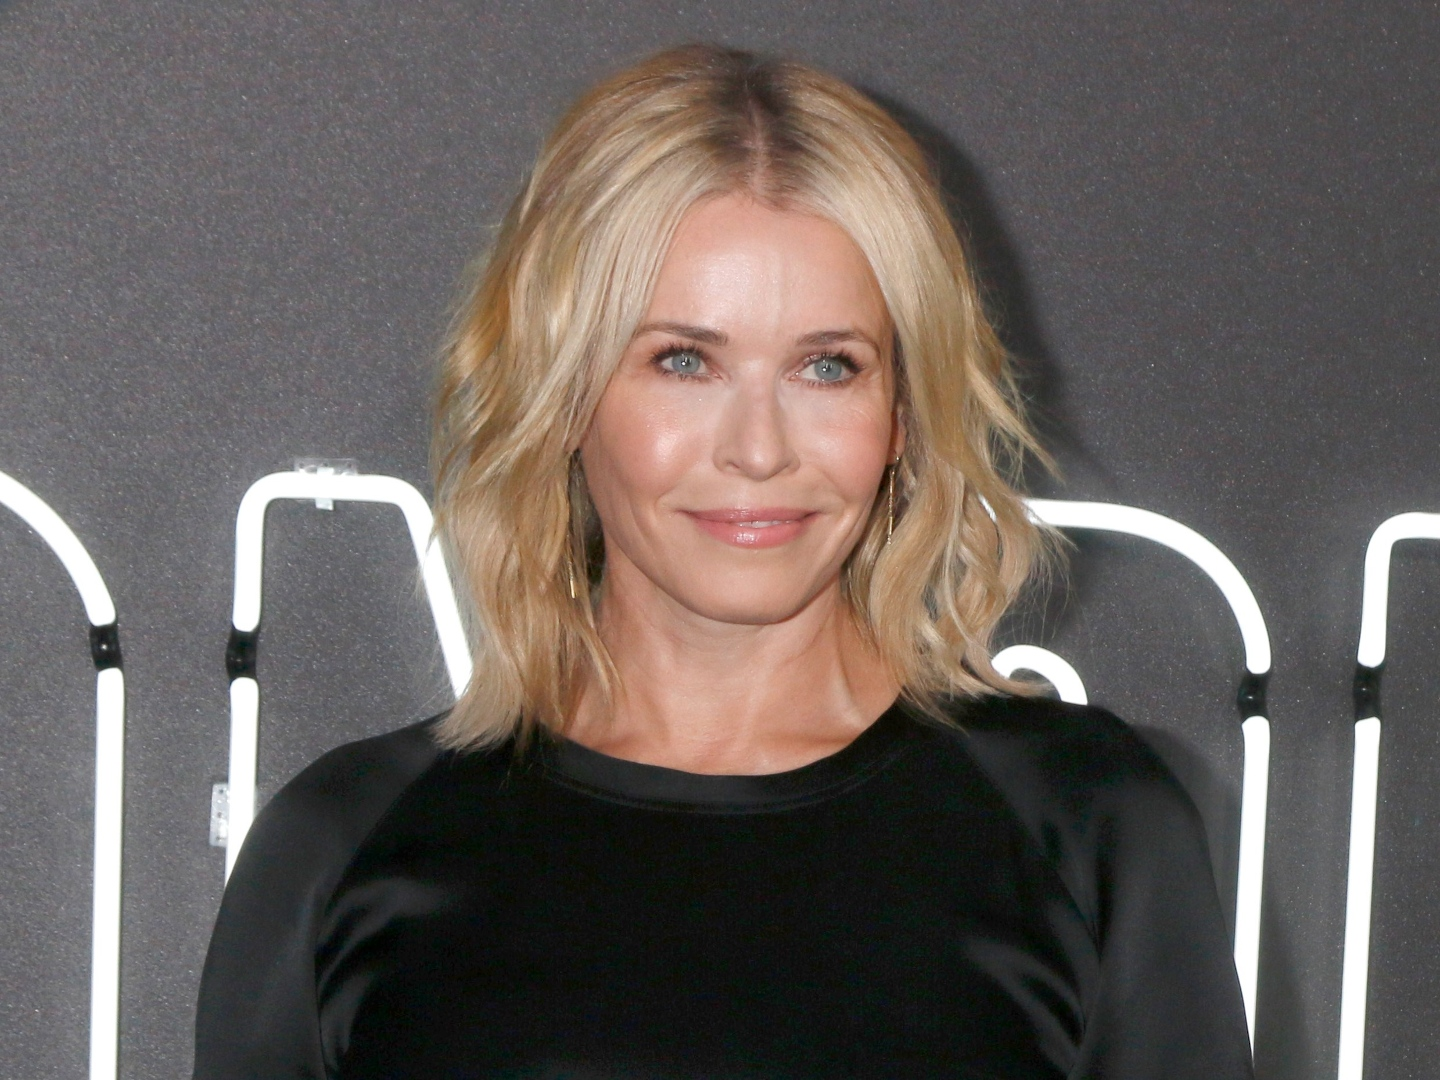 Chelsea Handler Posts Topless Photo On Election Day Sheknows